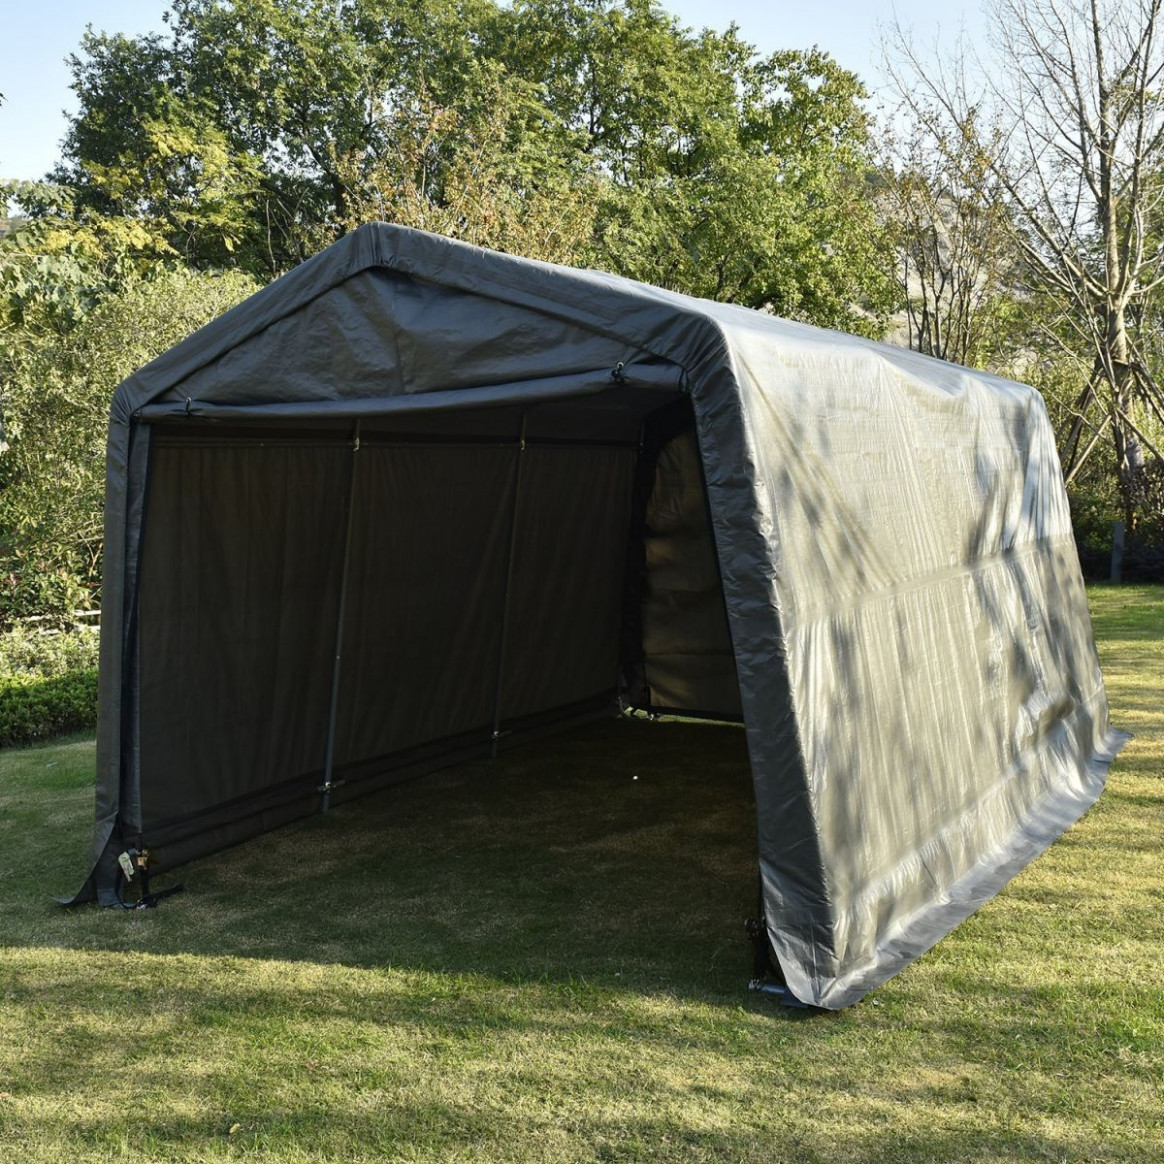 11 Portable Carport Shelters To Take Care Of Your Car Top Rated Portable Carport